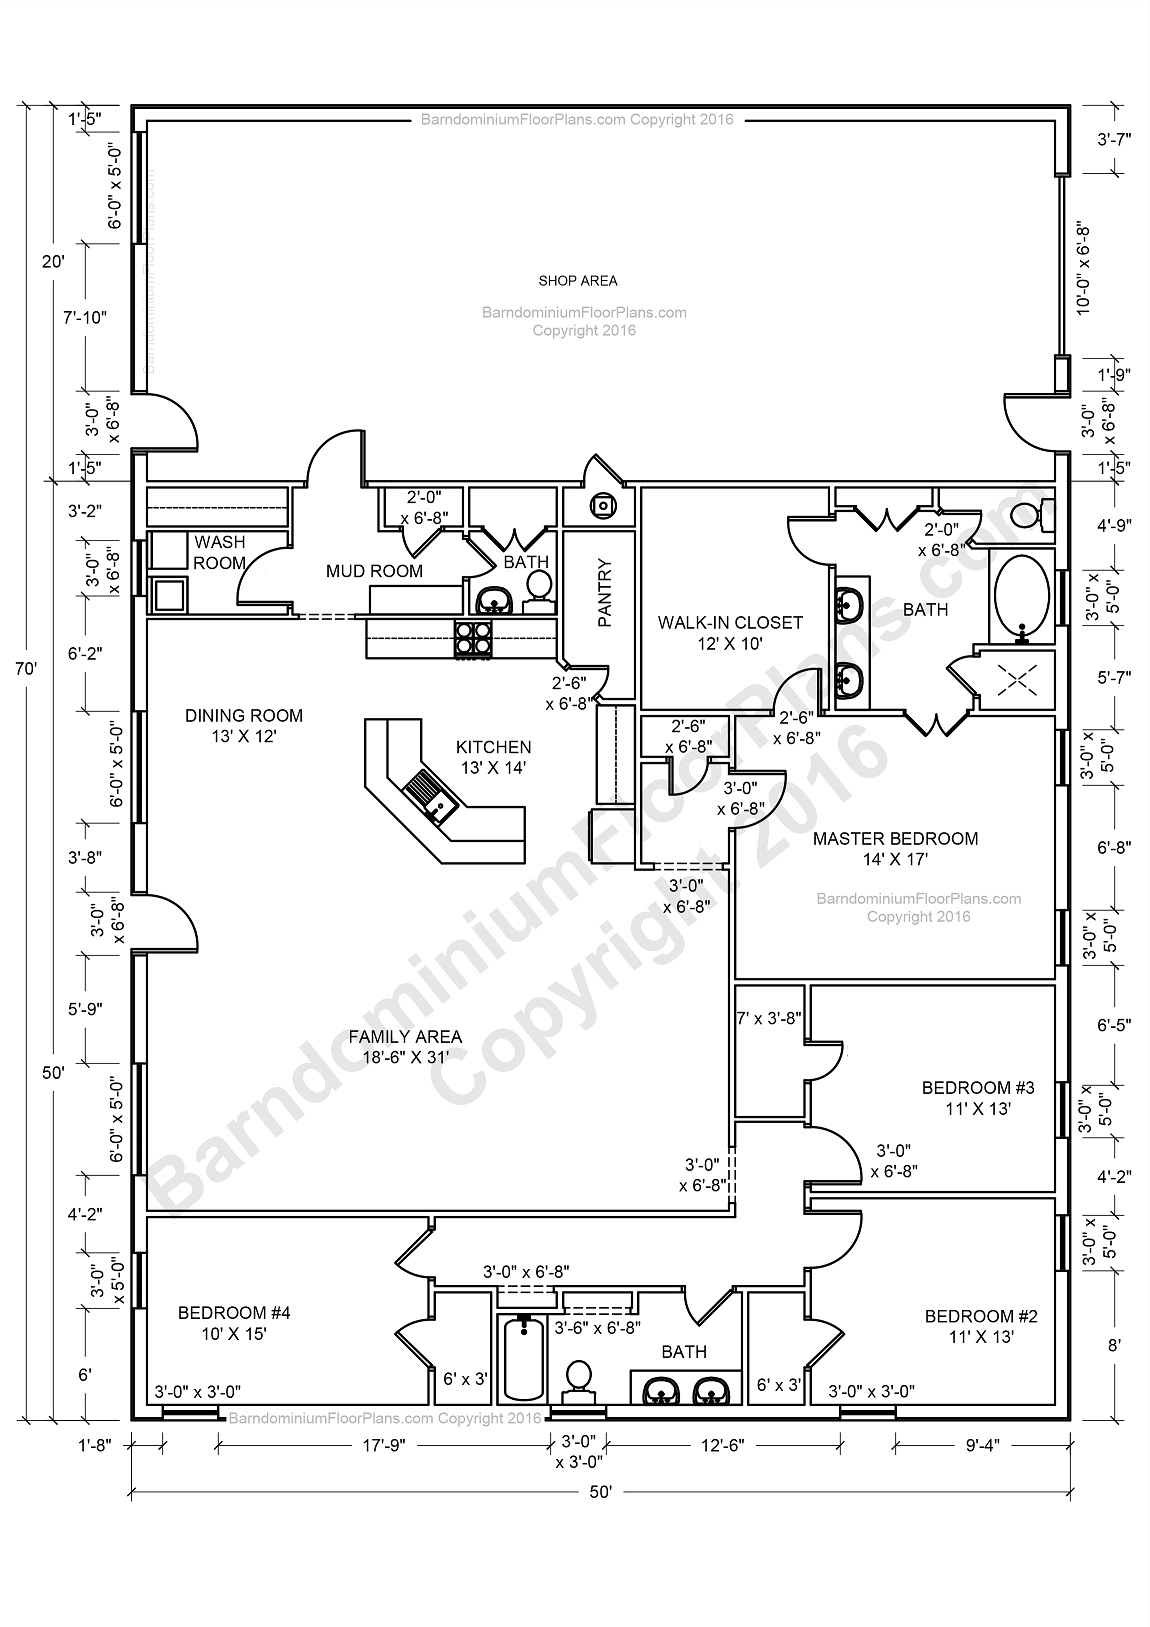 Barndominium floor plans barndominium floor plans 1 800 for Pole barn homes plans